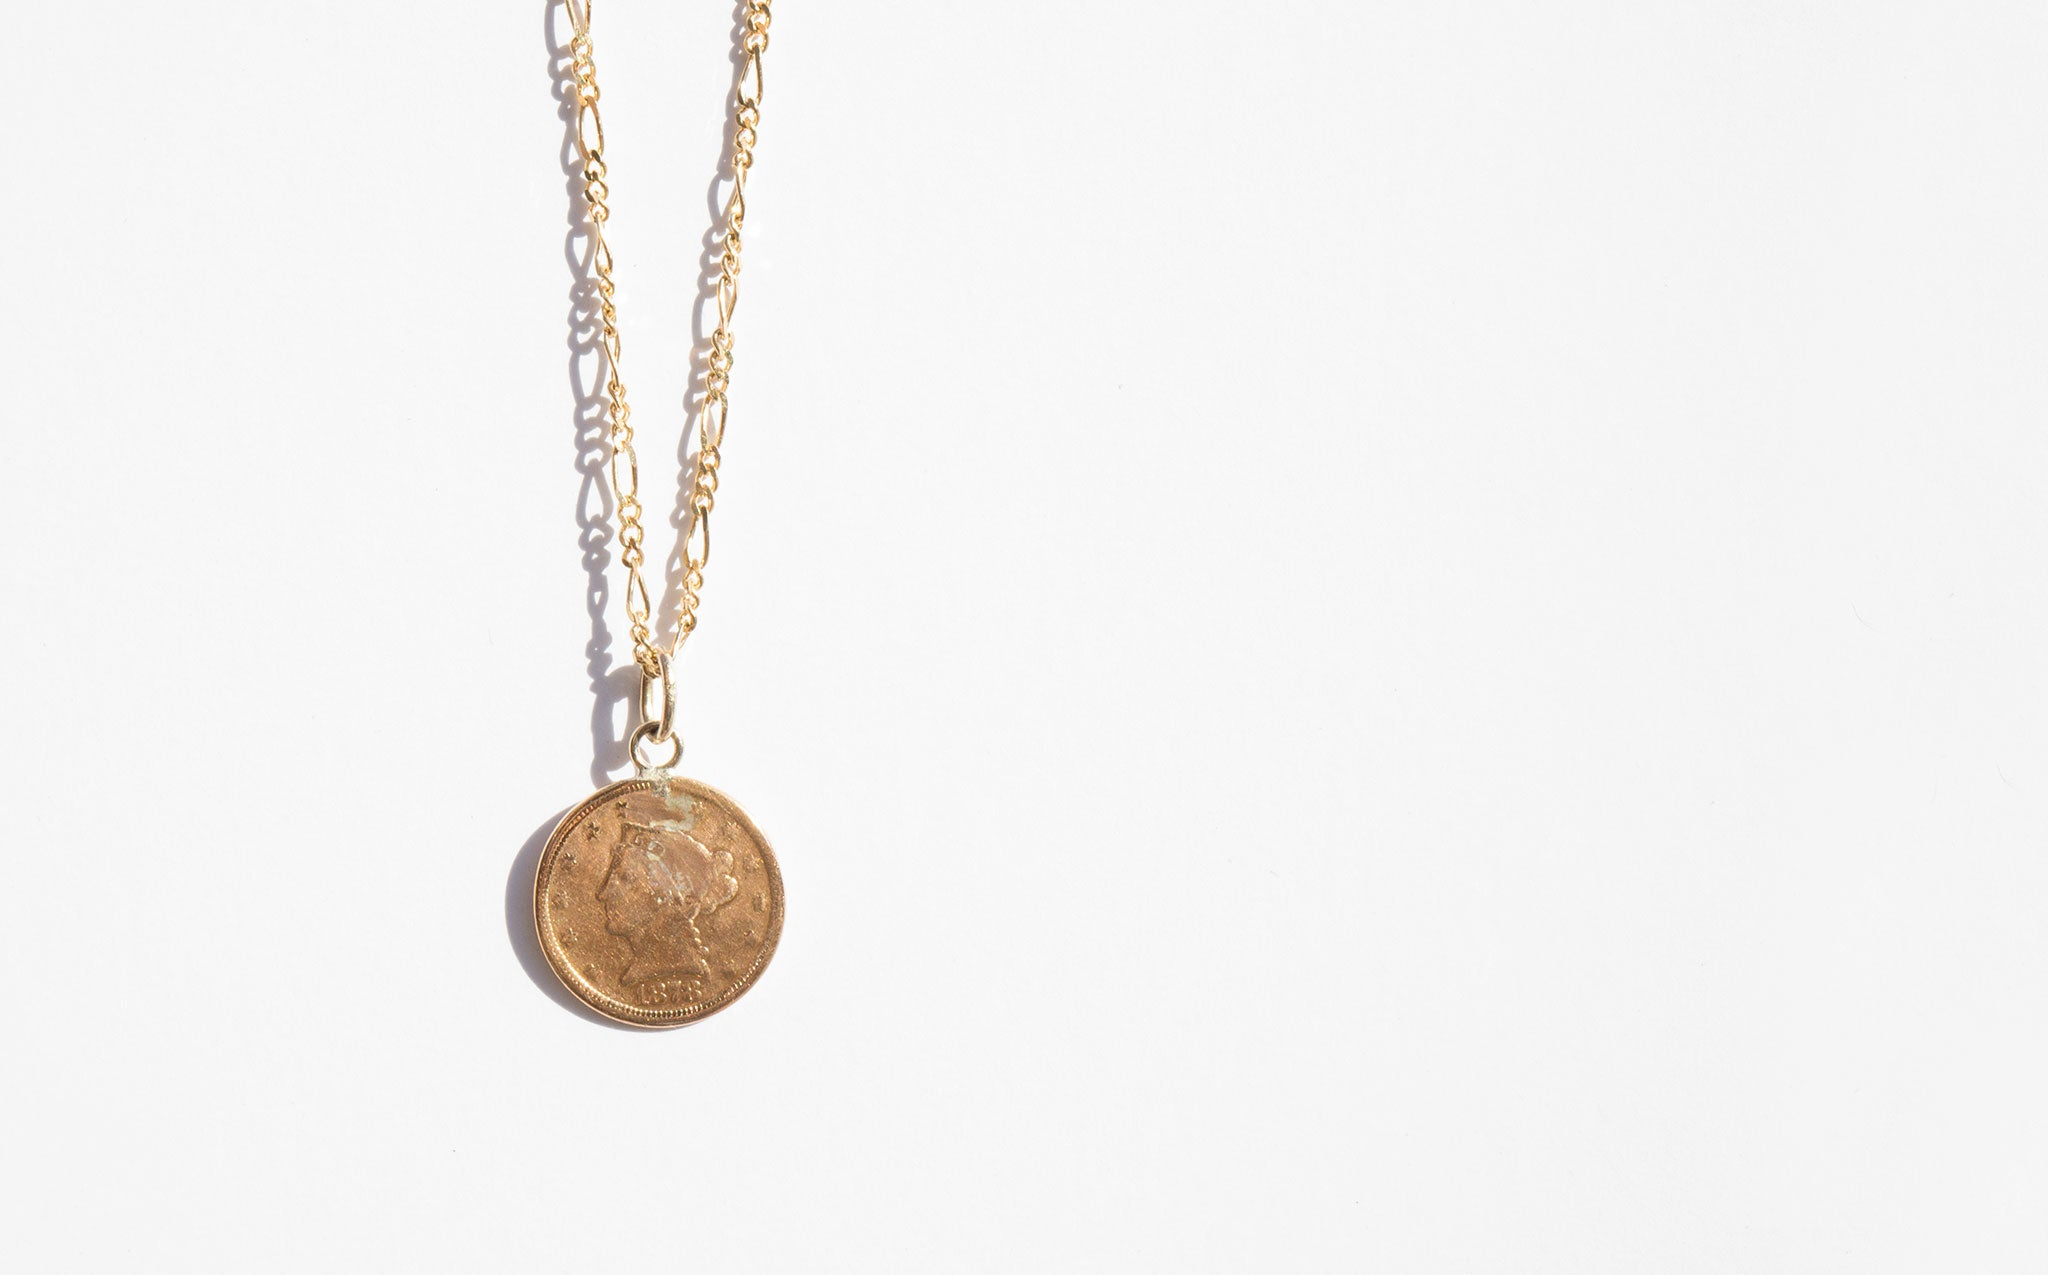 1878 Pendant Necklace